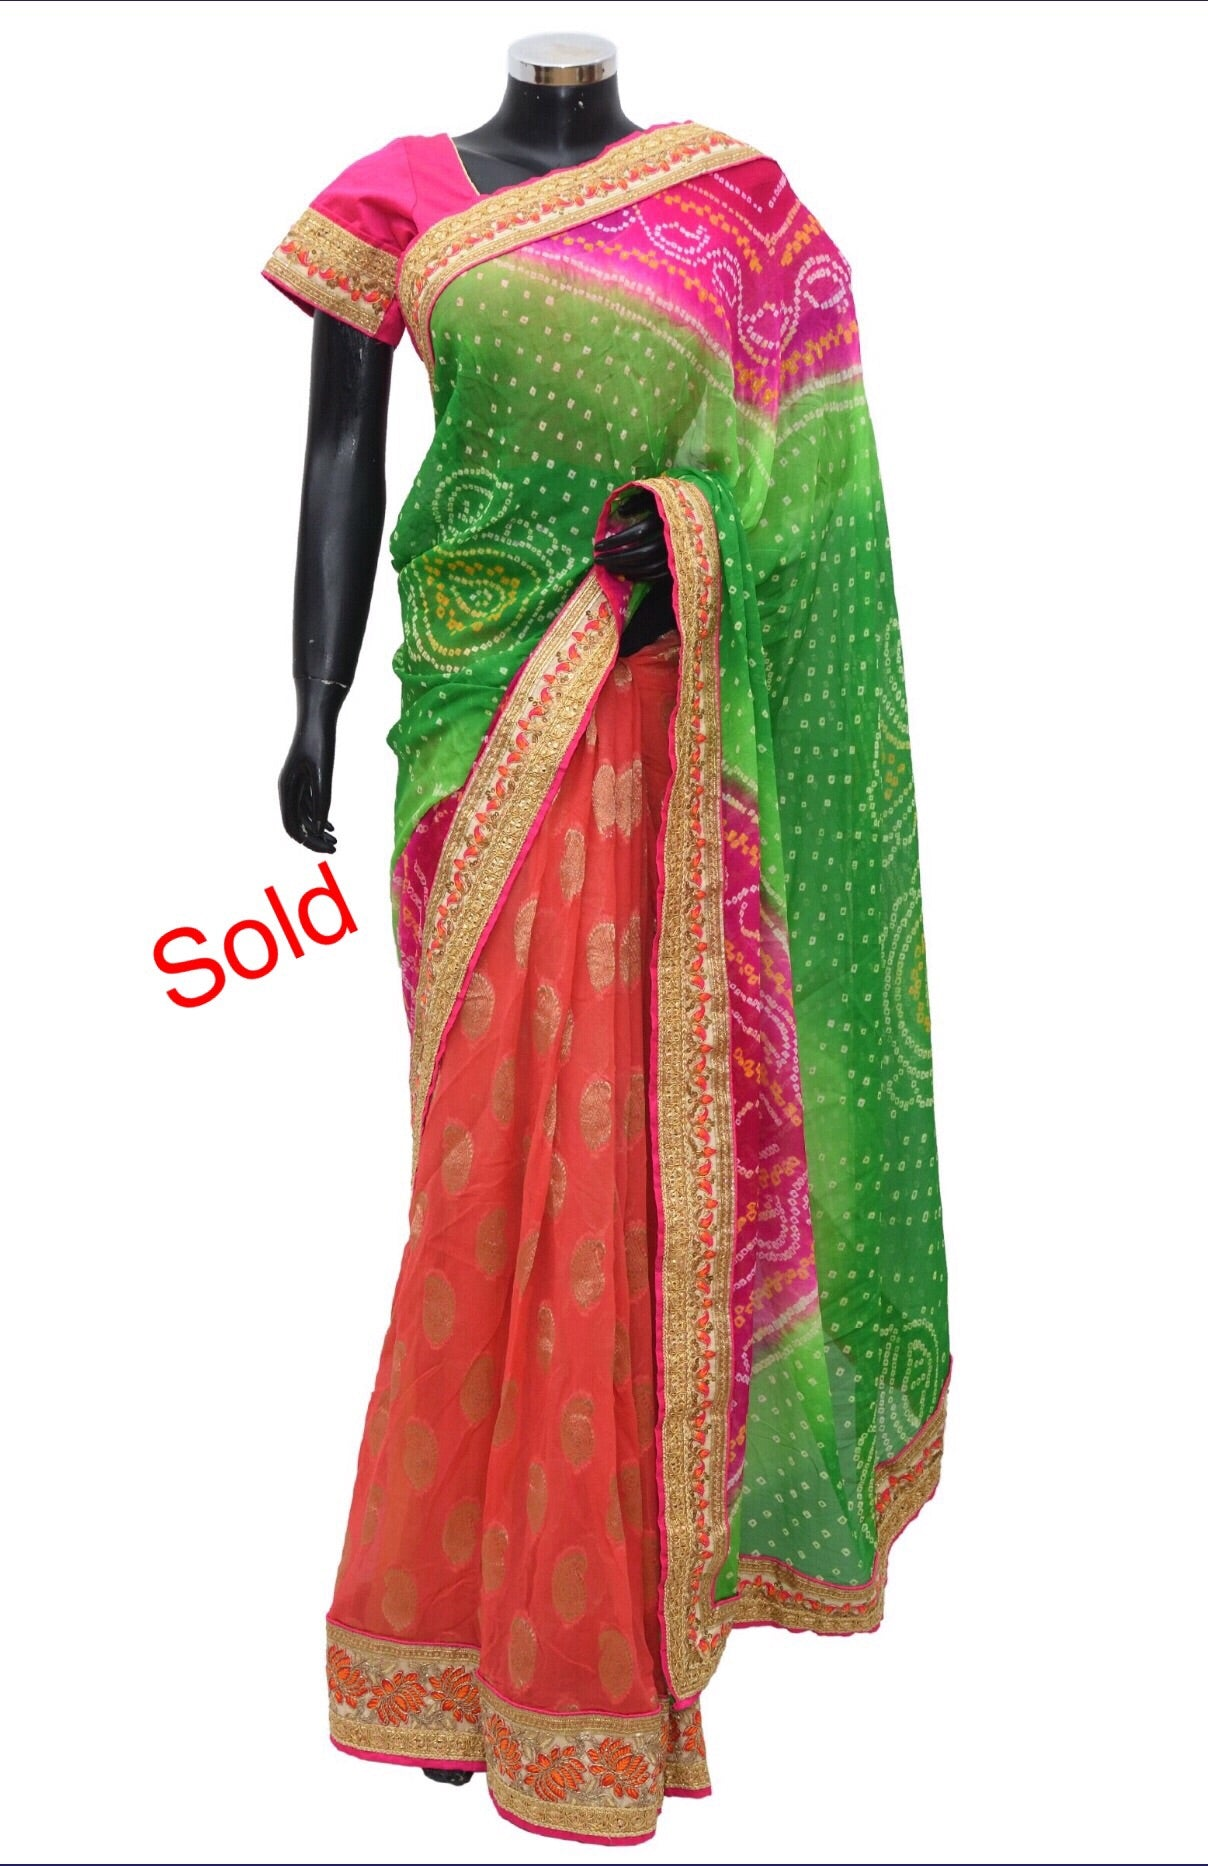 Bandheni embroidered saree Fdn1015-451